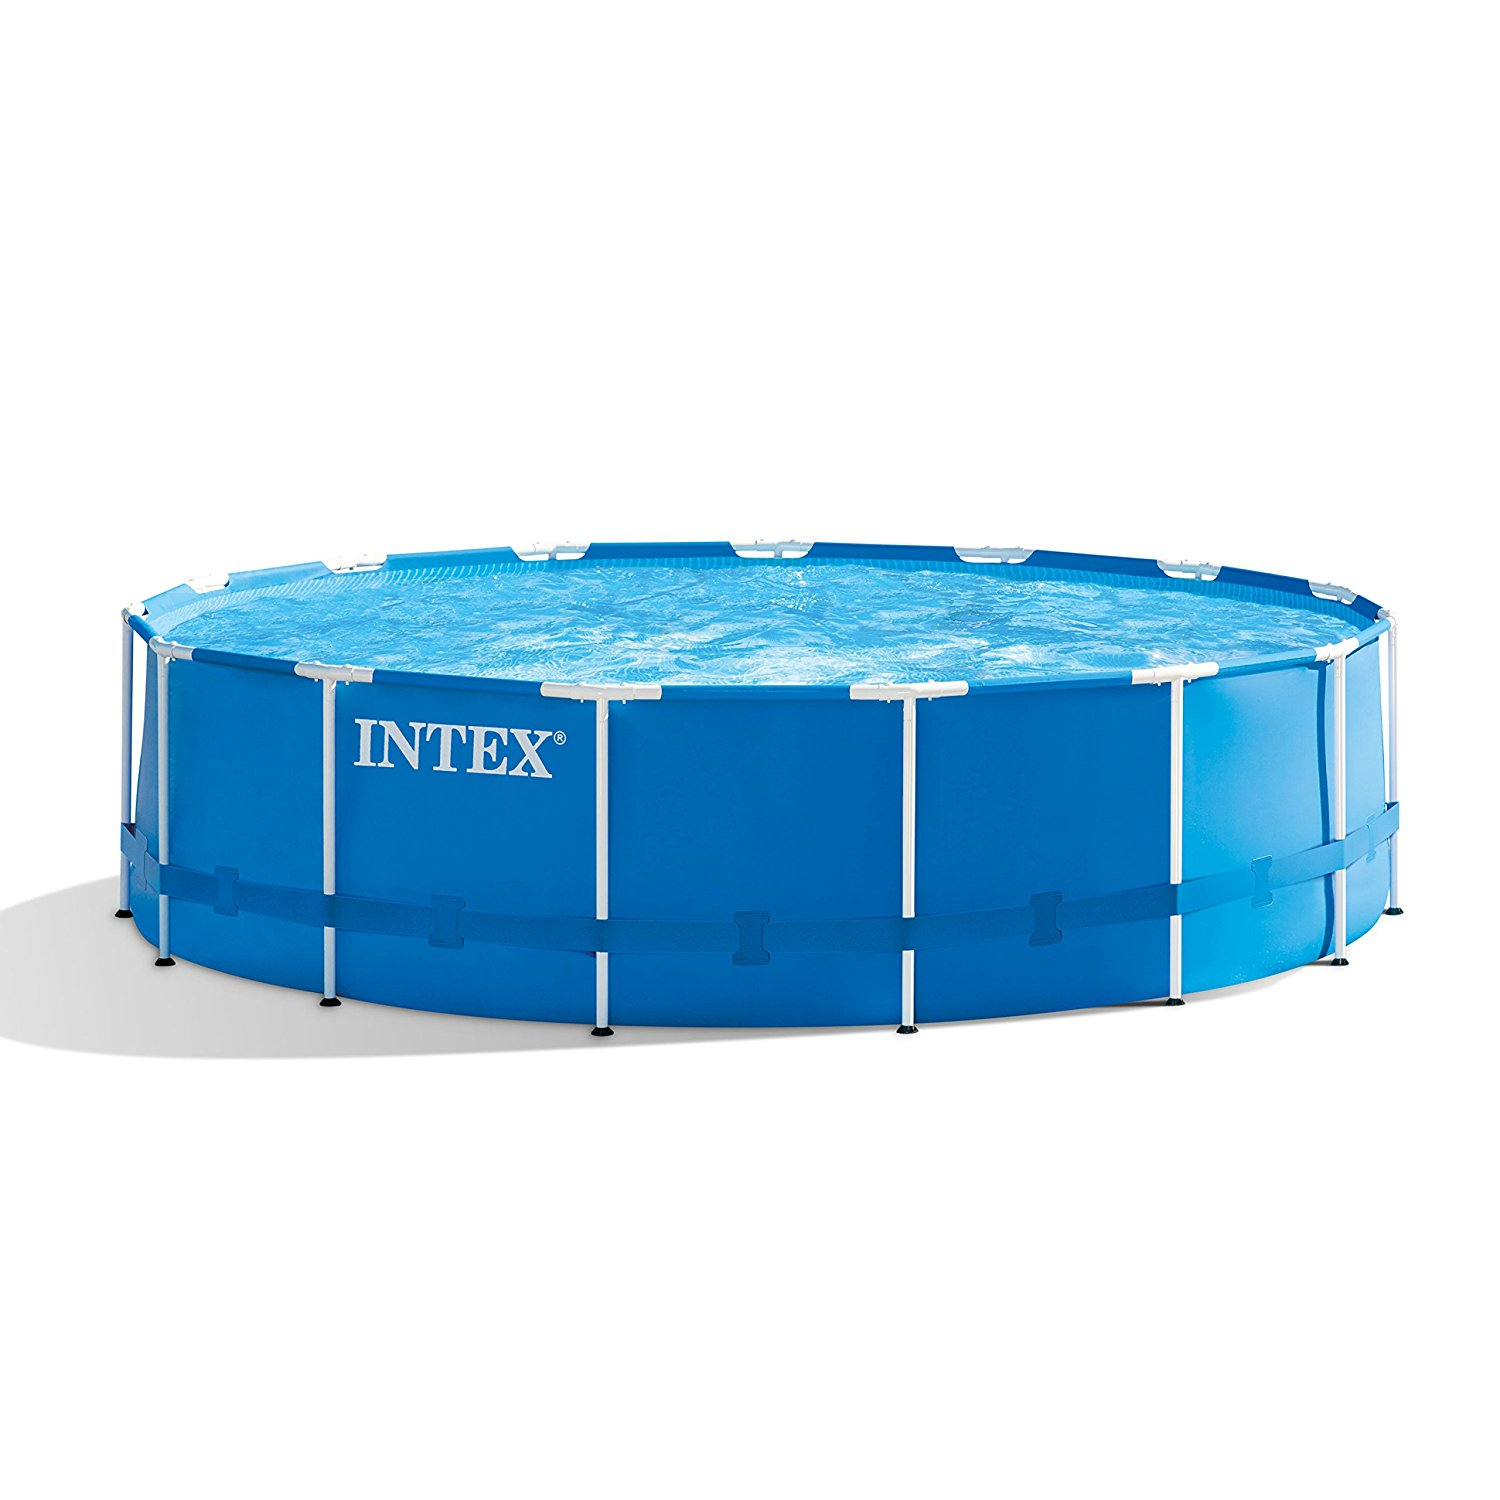 Frame Pool Test Intex 28241eh 15ft X 48in Metal Frame Pool Set With Filter